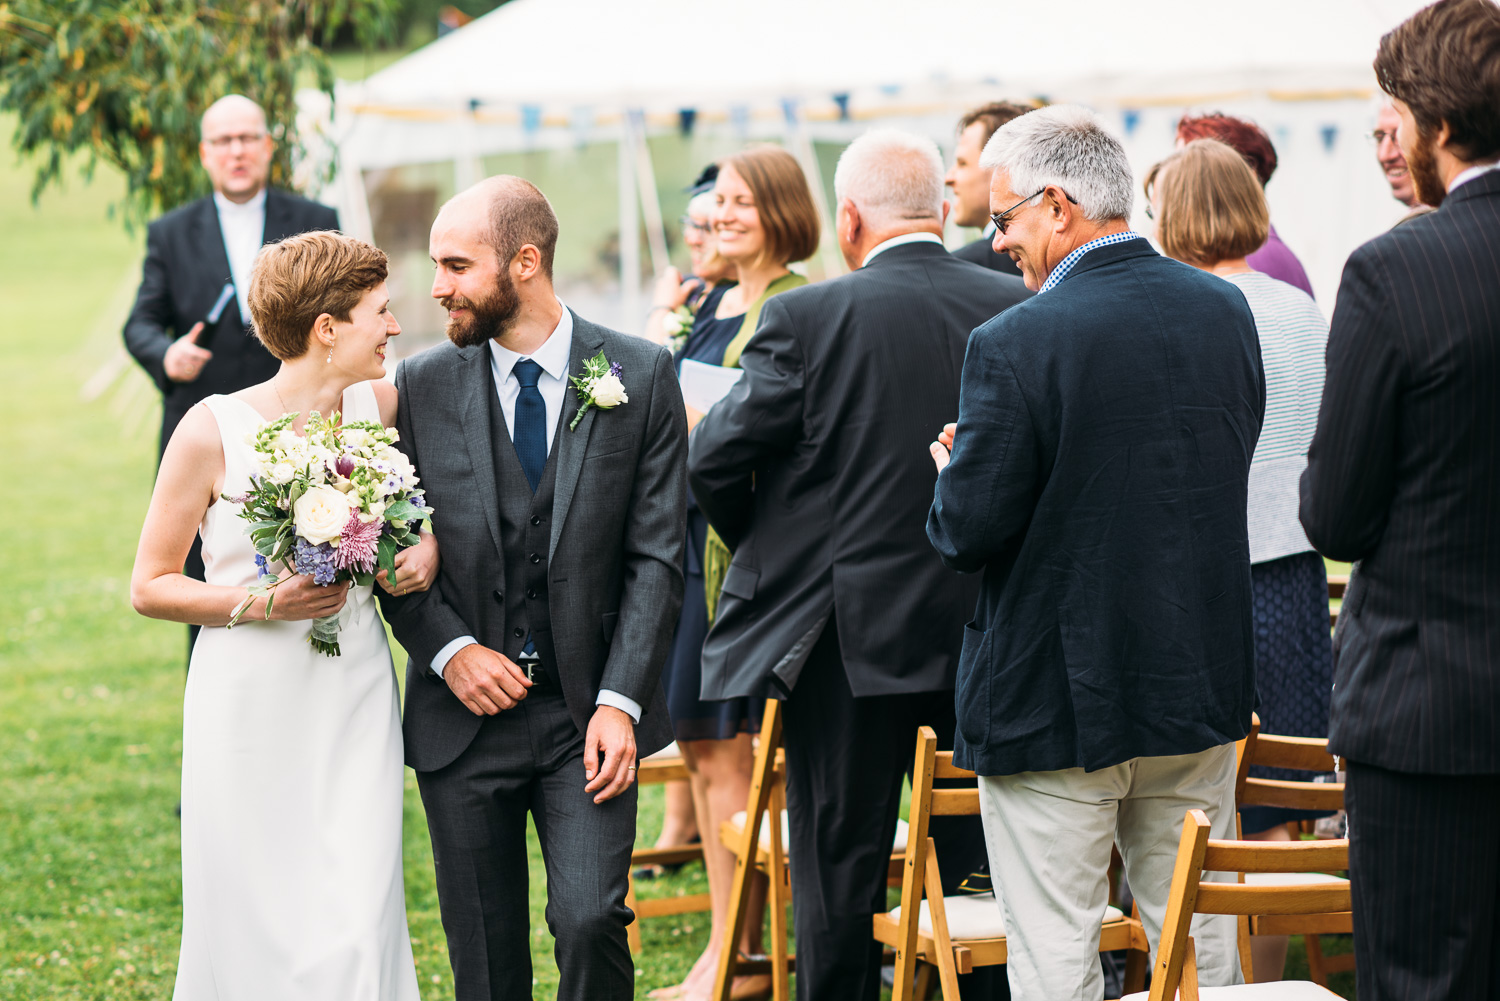 back-garden-wedding-41.jpg